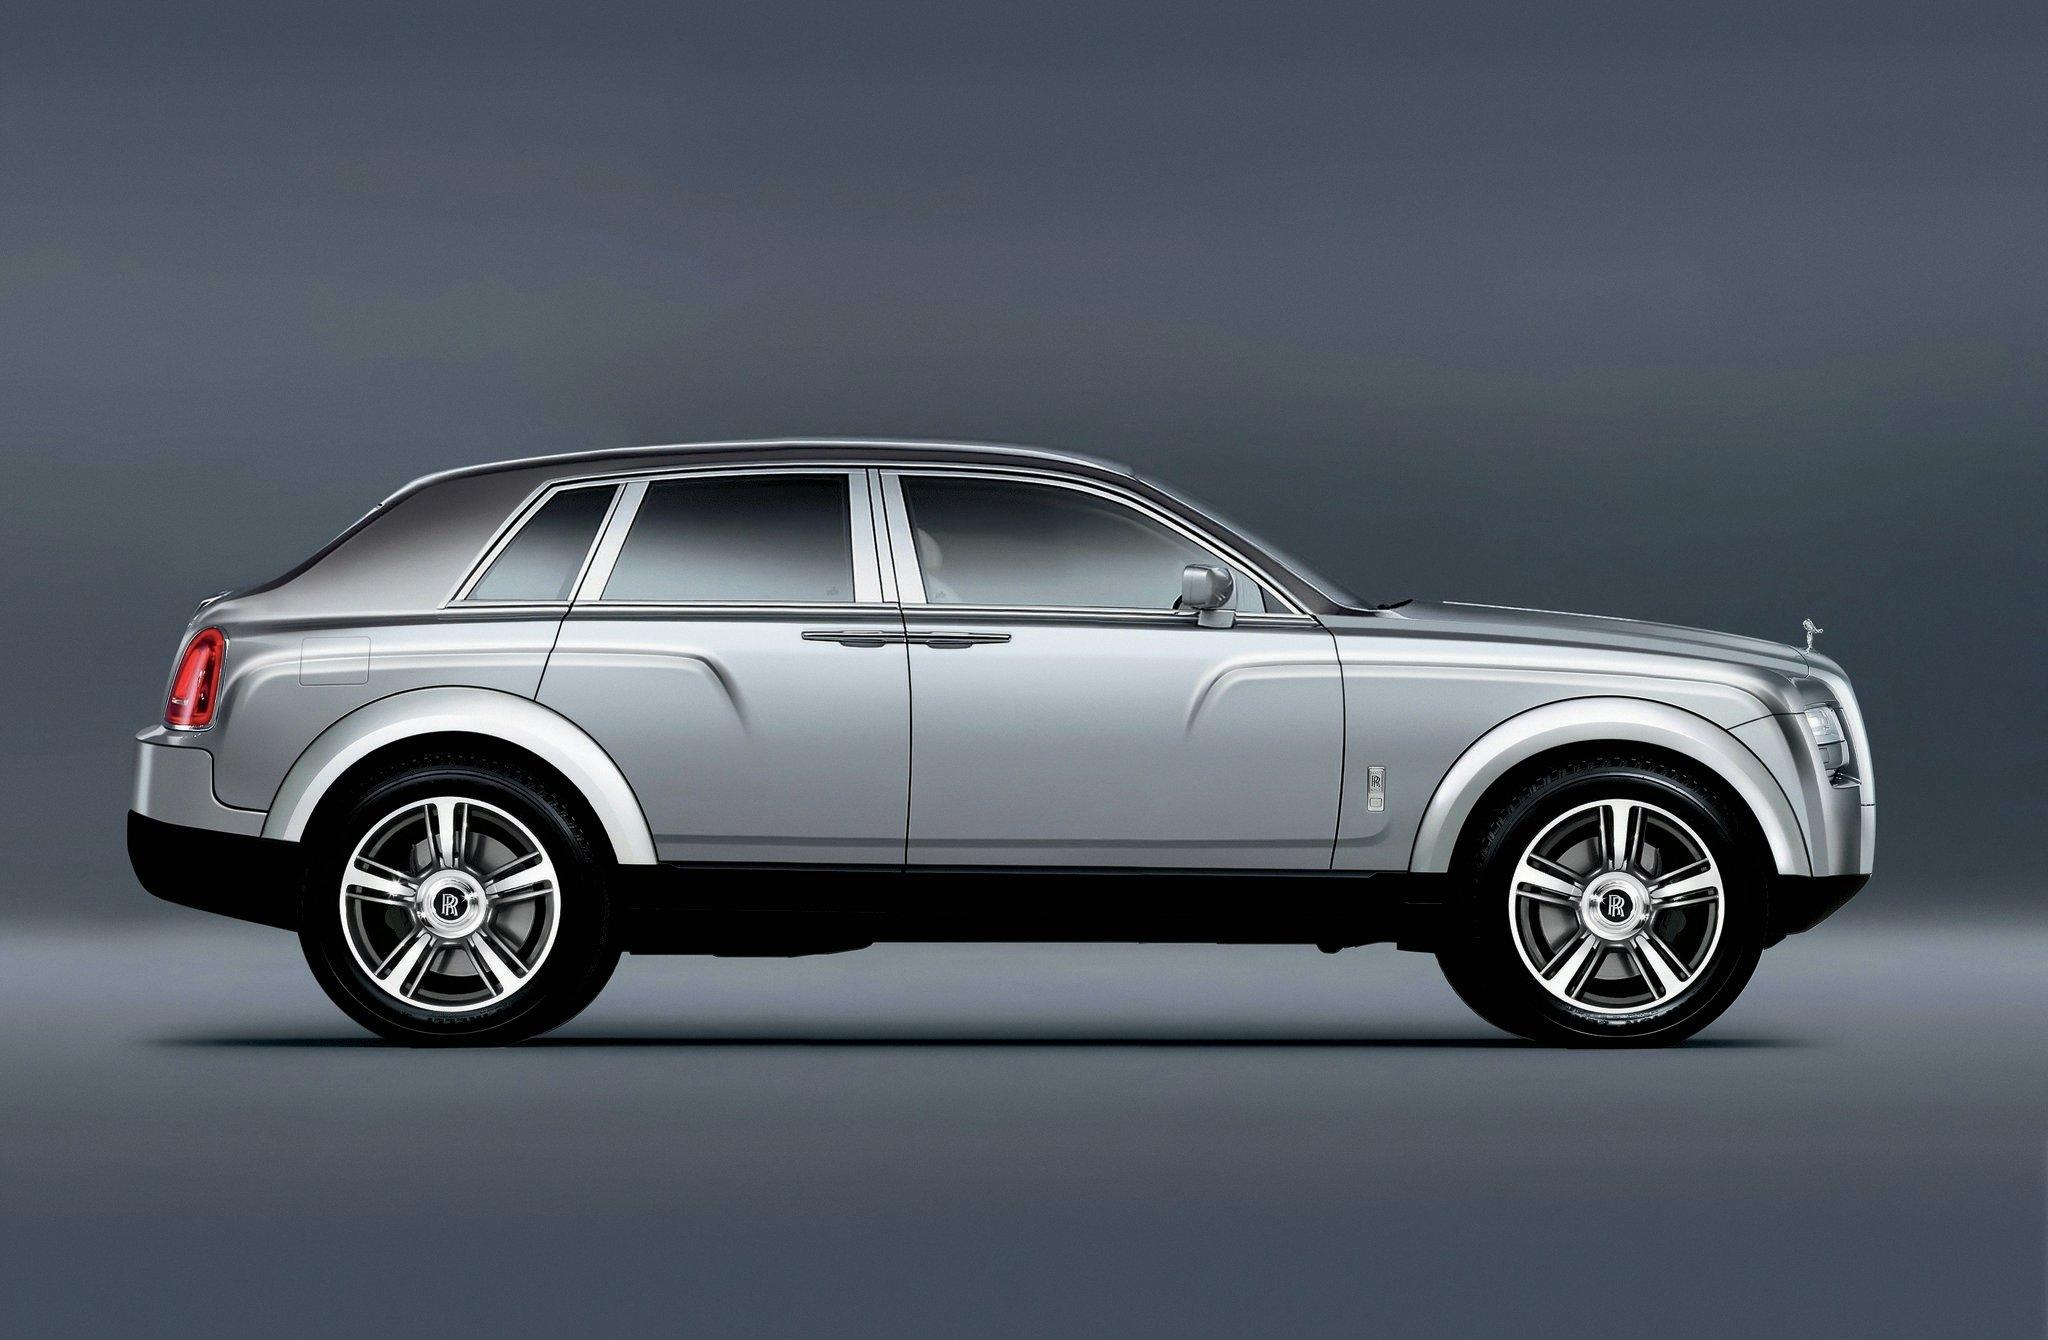 Rolls Royce Suv Officially Confirmed Youwheel Com Your